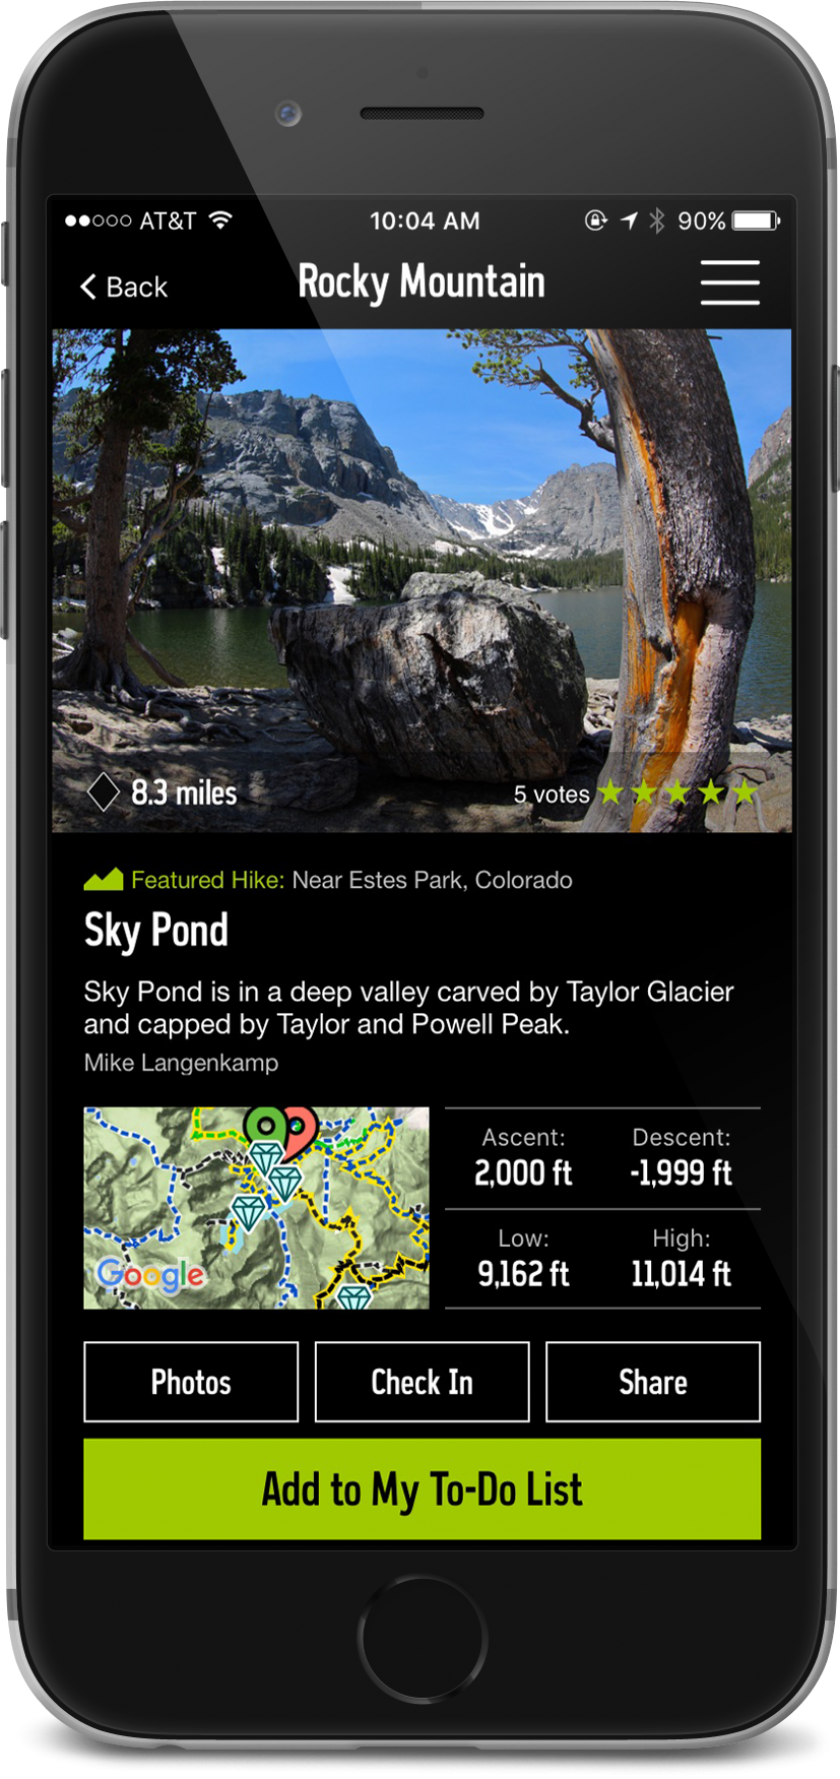 Image of iPhone with the REI Co-op Guide to National Parks App on screen; features data and descriptions of Rocky Mountain park